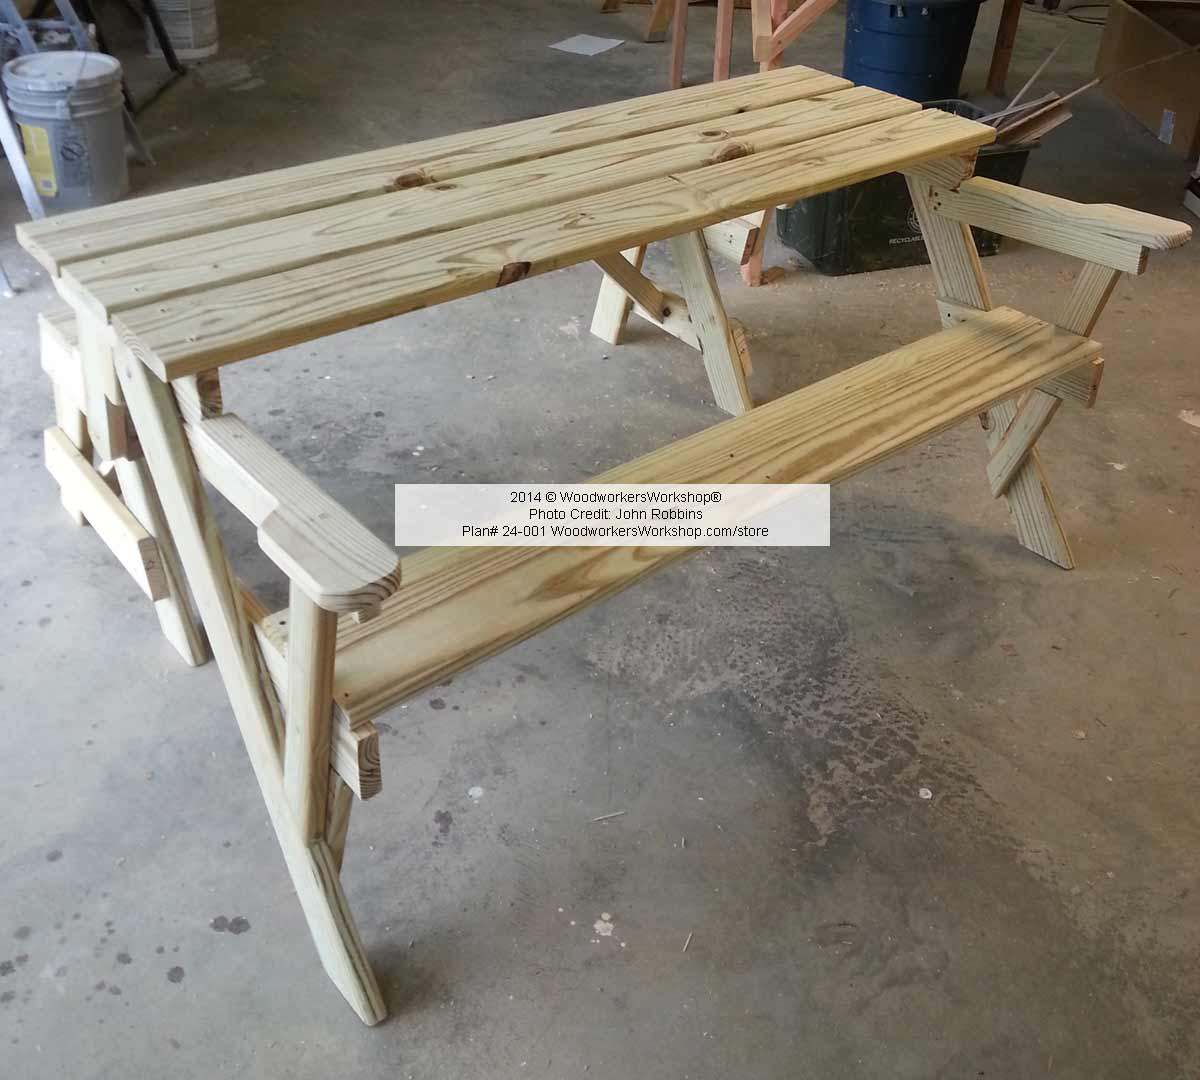 Here workbench plans online apparel for Wood plans online